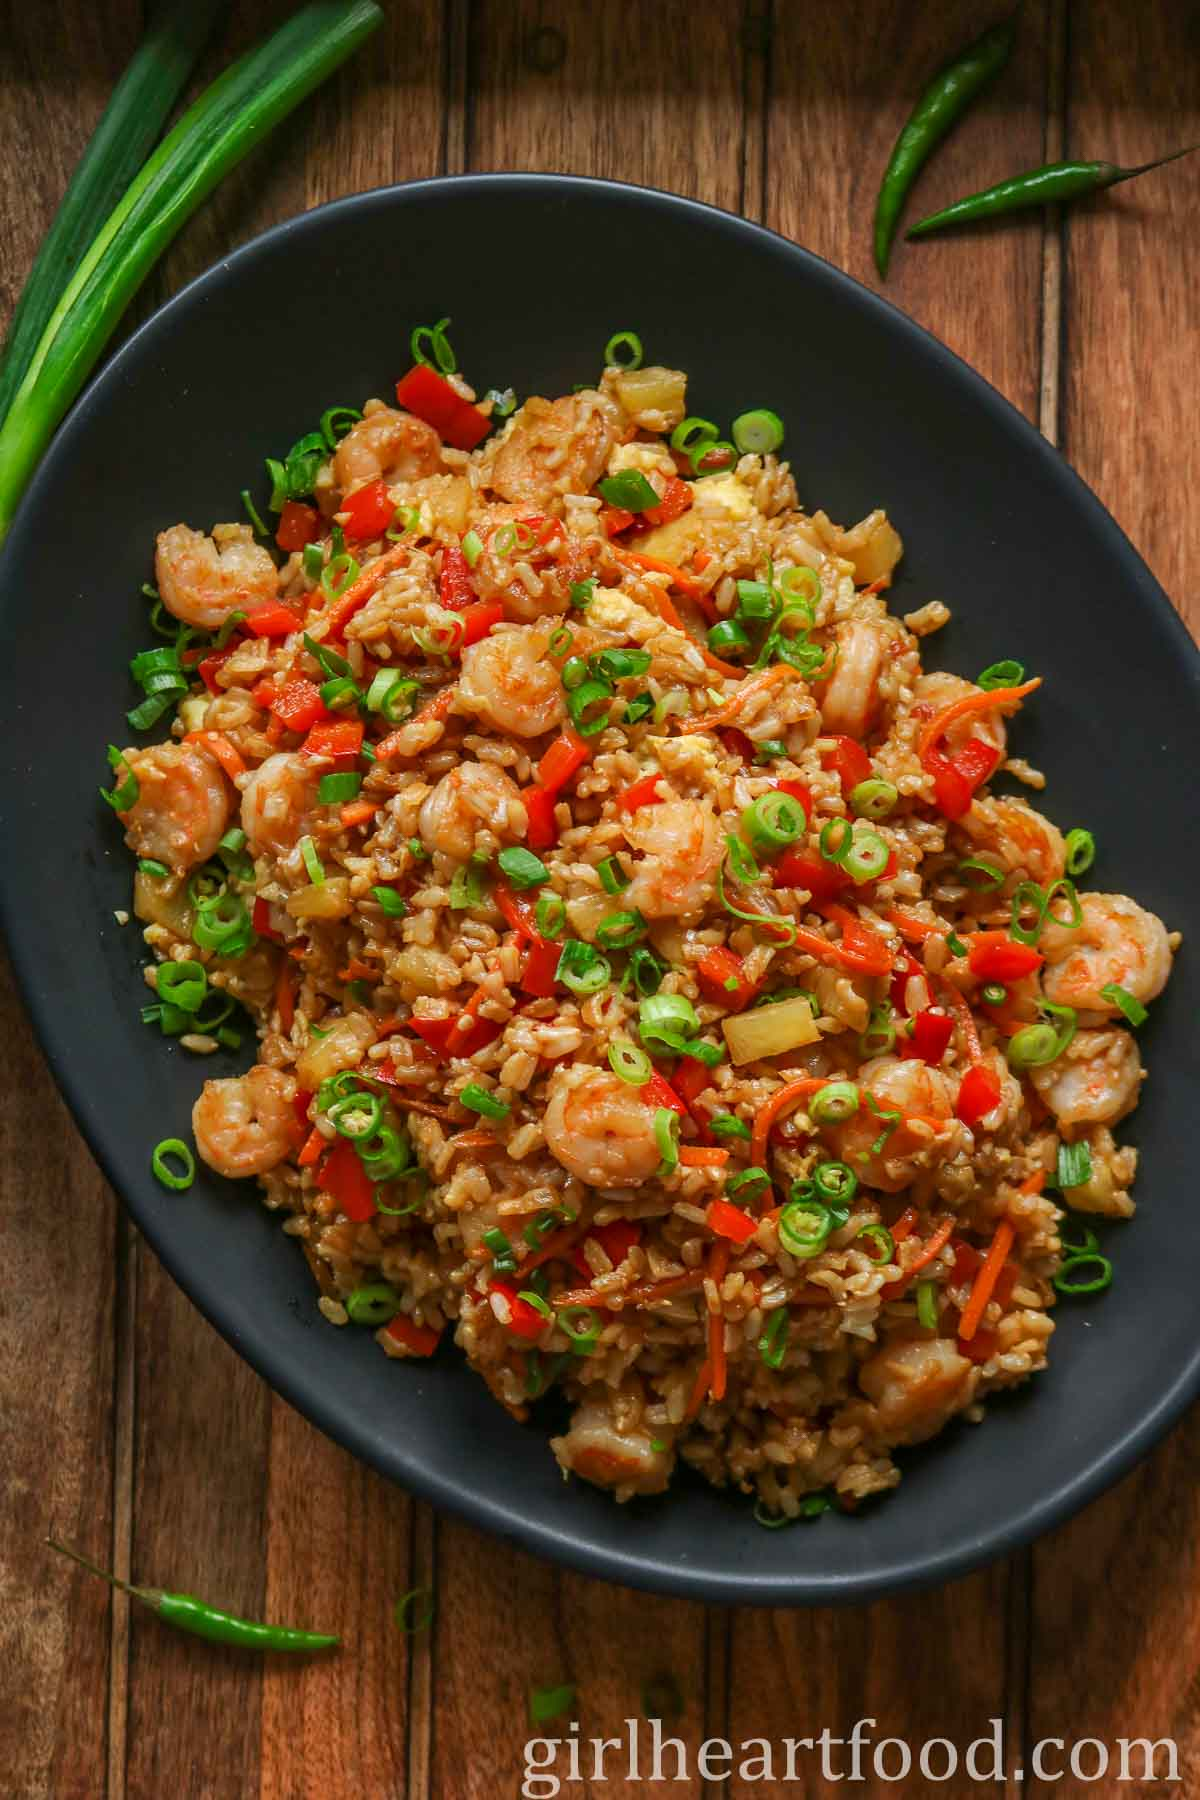 Pineapple shrimp fried rice on a black platter next to chili peppers and green onion.